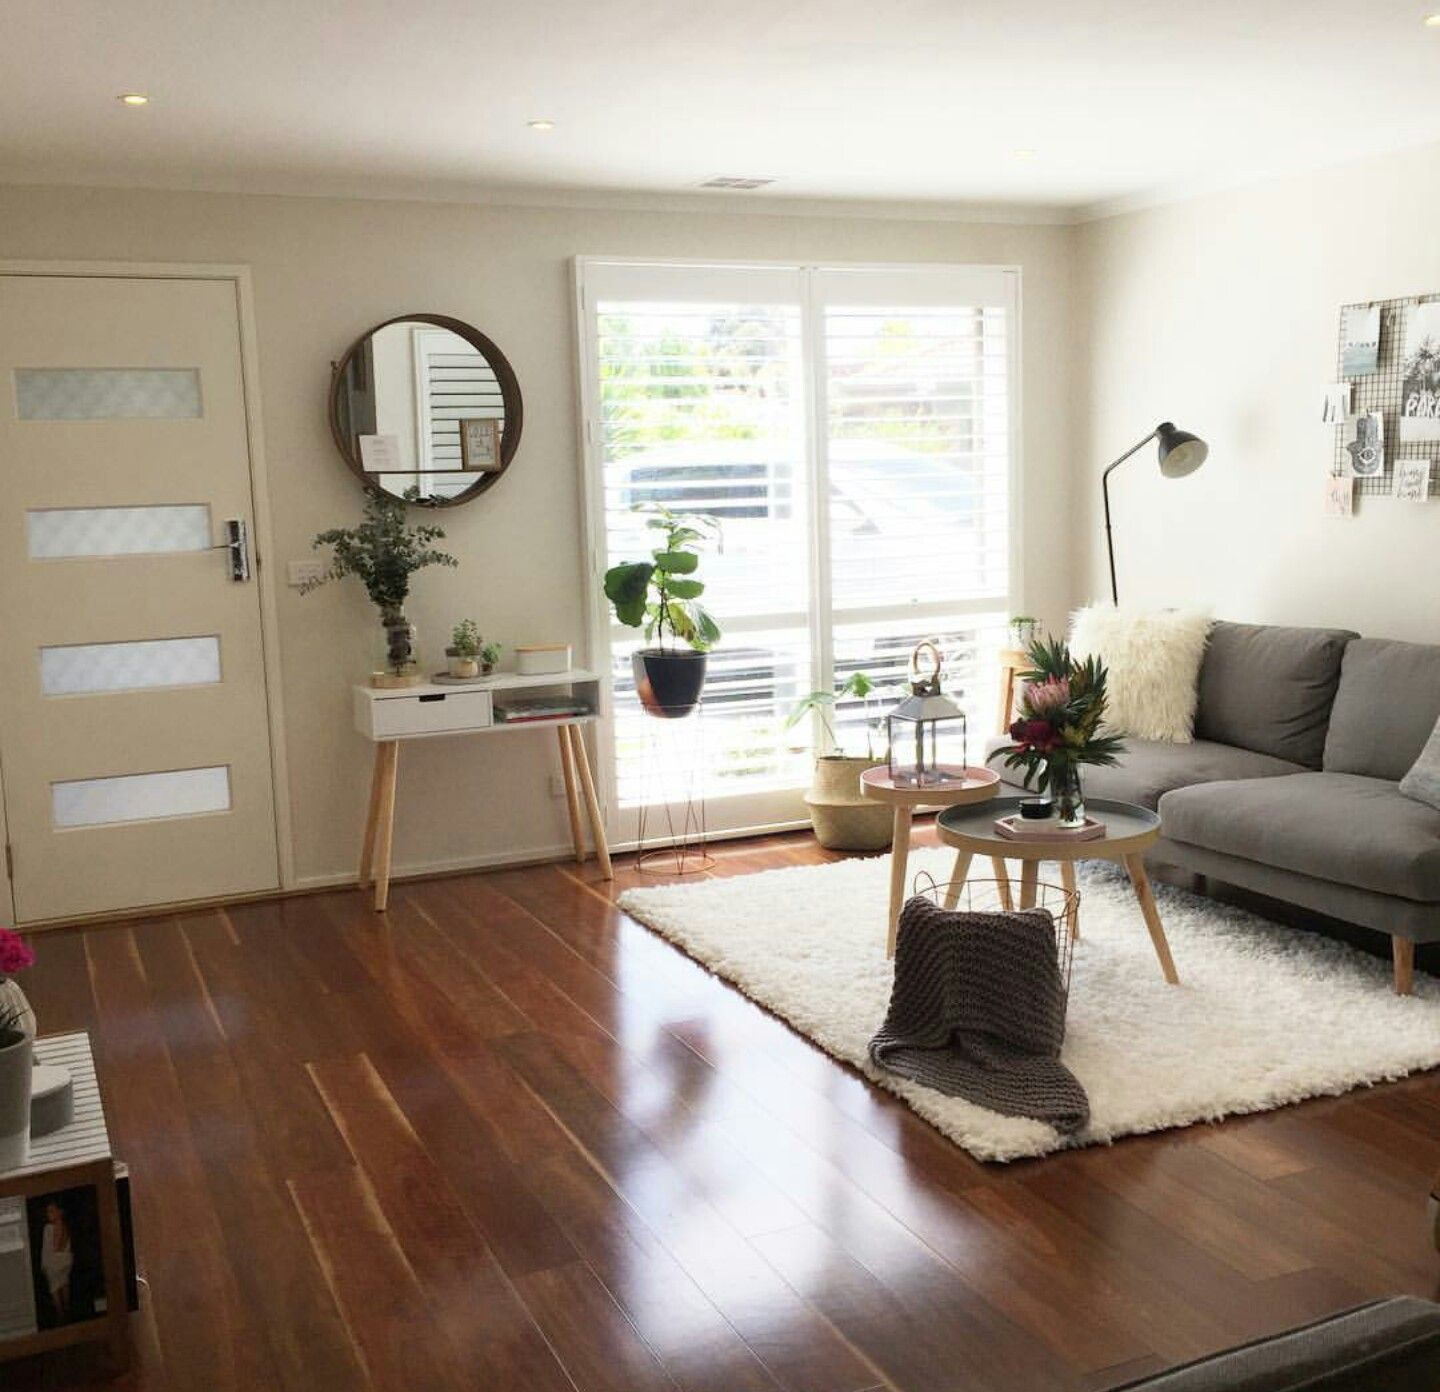 Pin by melissa amaya on home sweet home pinterest flats living